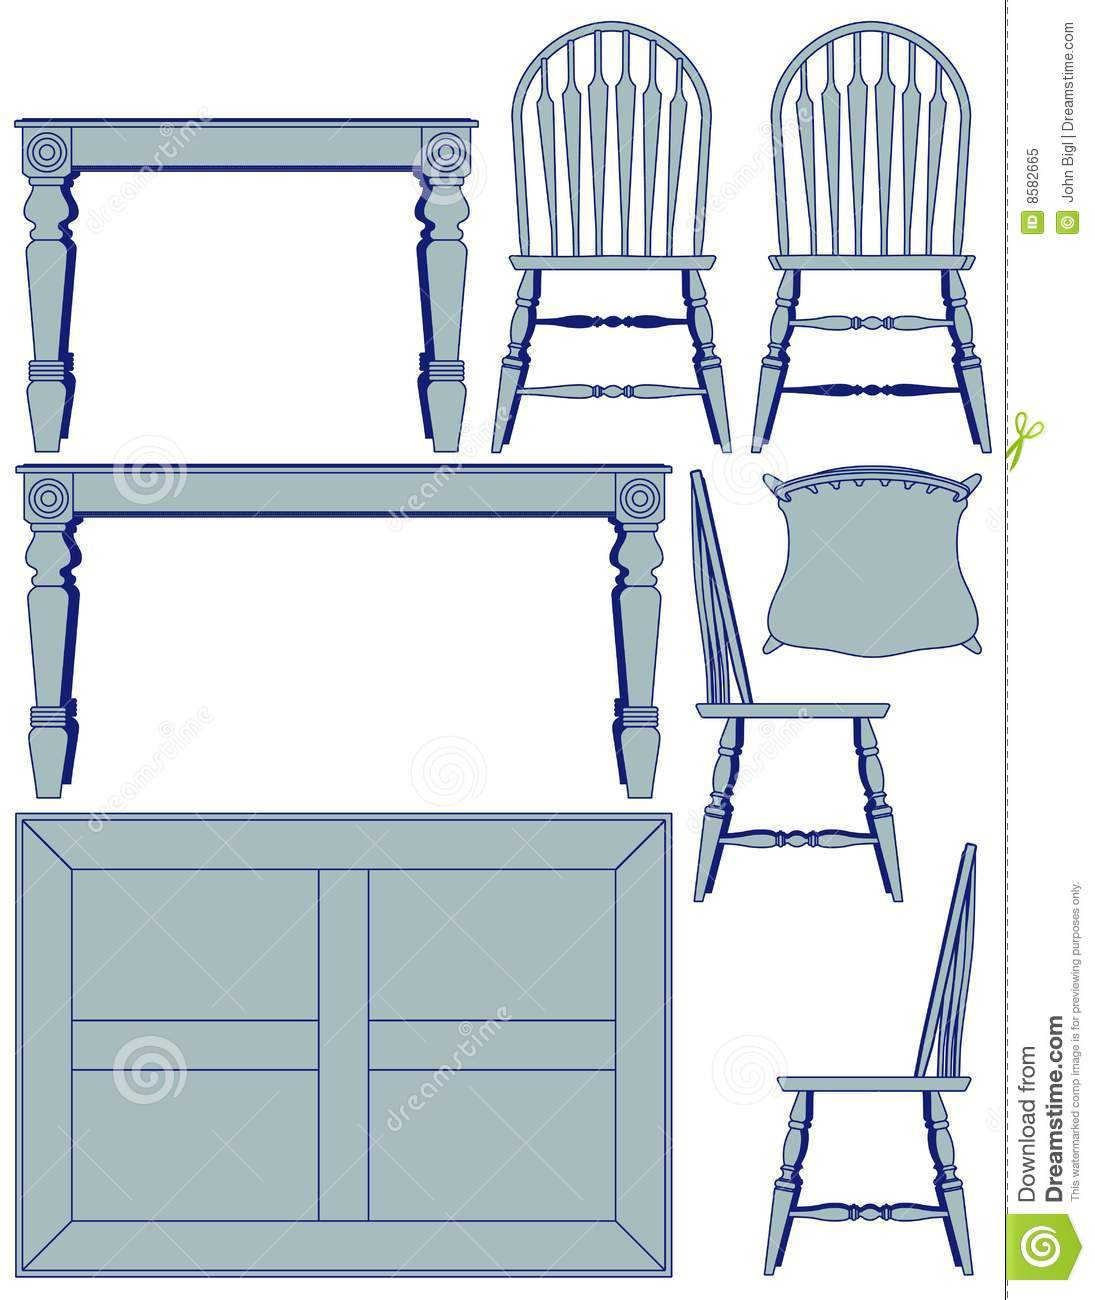 Dining furniture blueprint stock vector illustration of download comp malvernweather Images